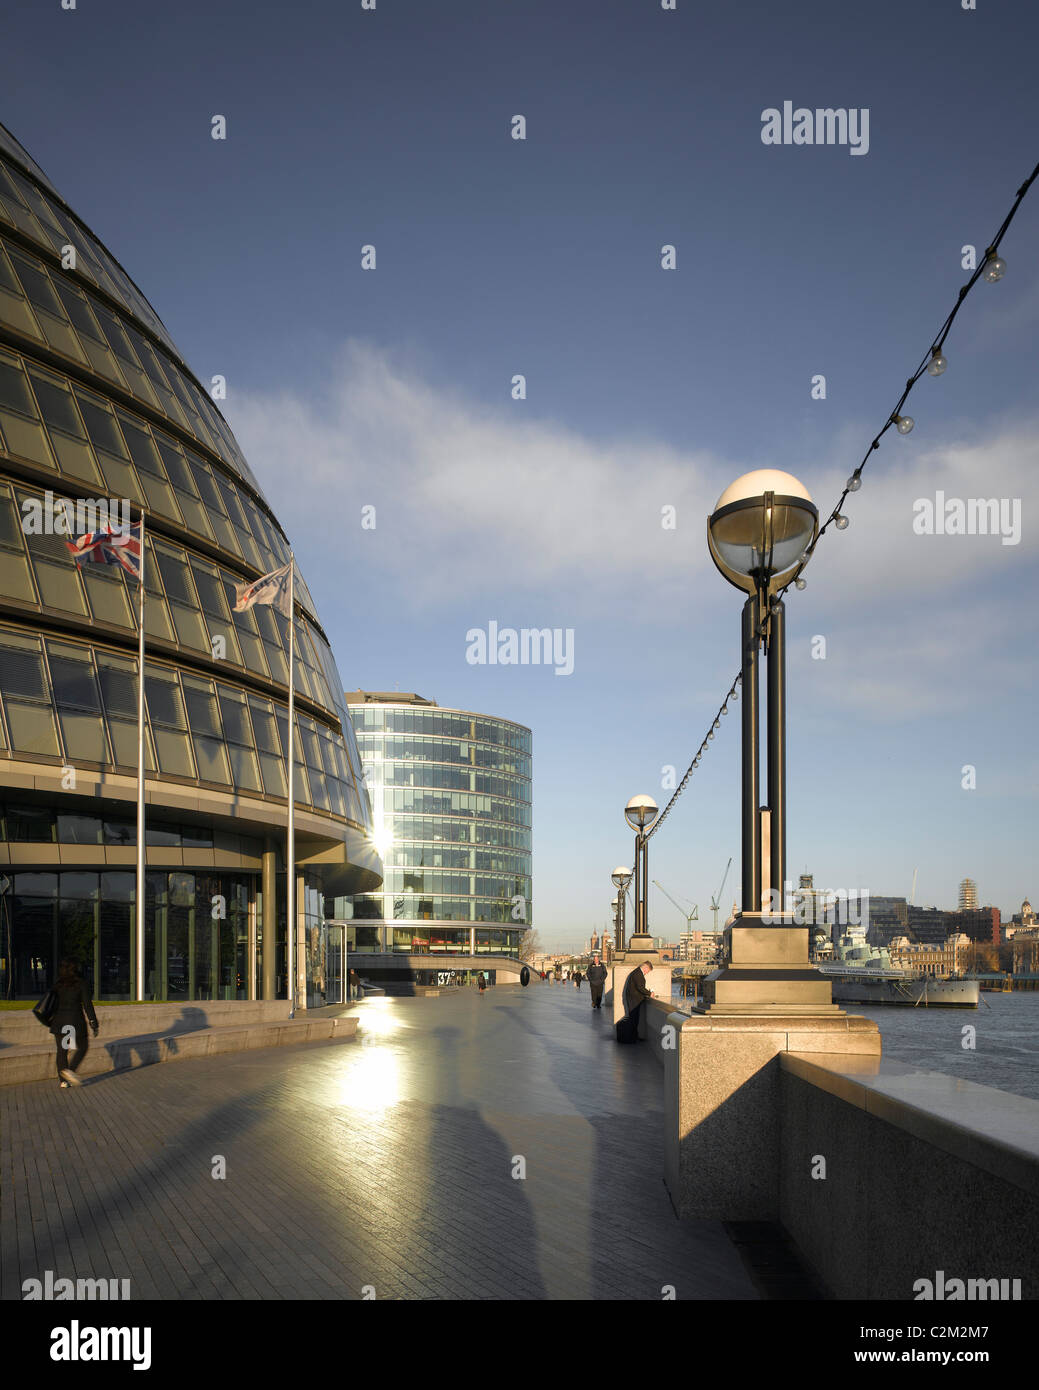 More London and County Hall offices, London. - Stock Image